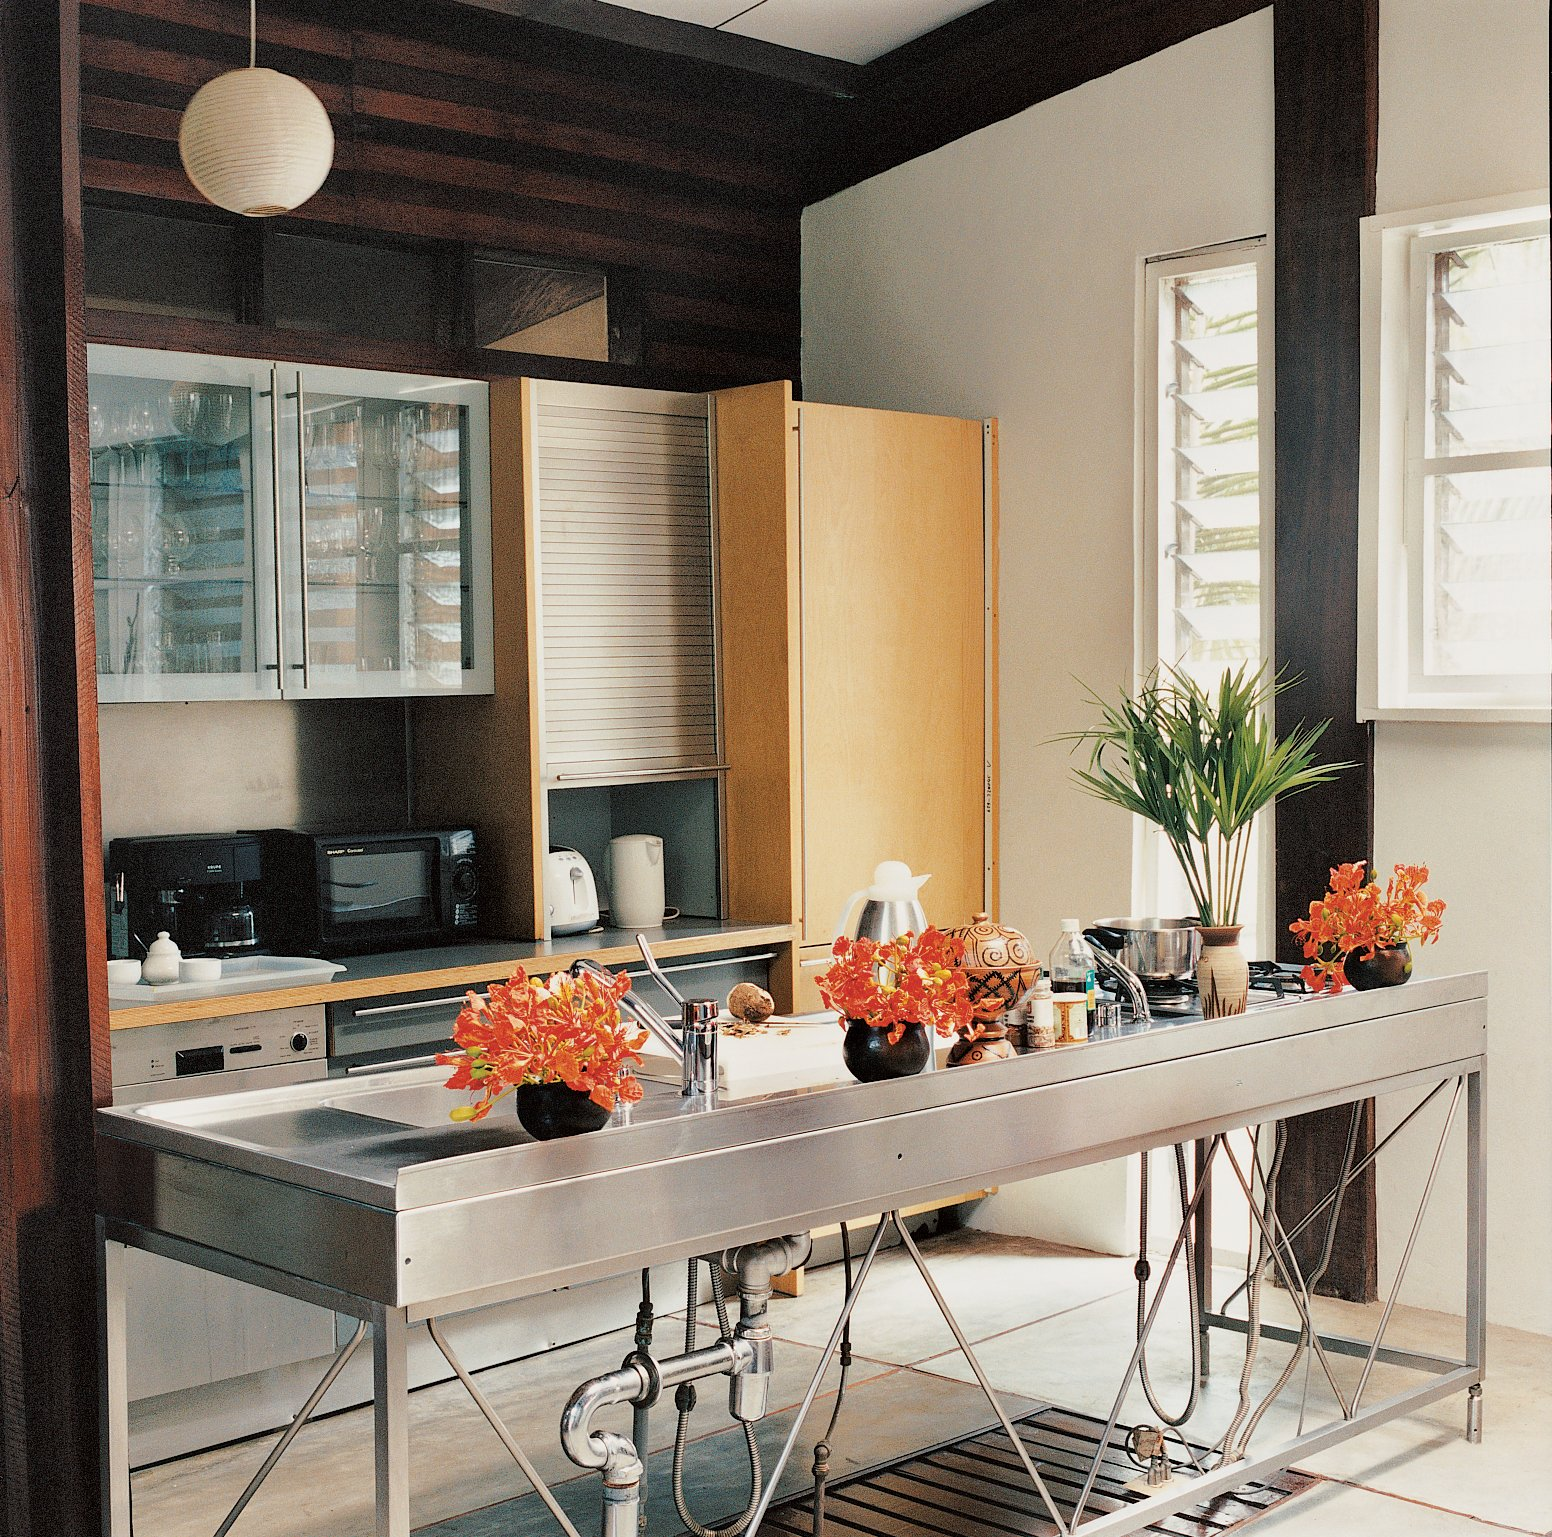 The Bulthaup workbench and kitchen cabinets were imported from L.A.  Photo 6 of 9 in An Inno-native Approach